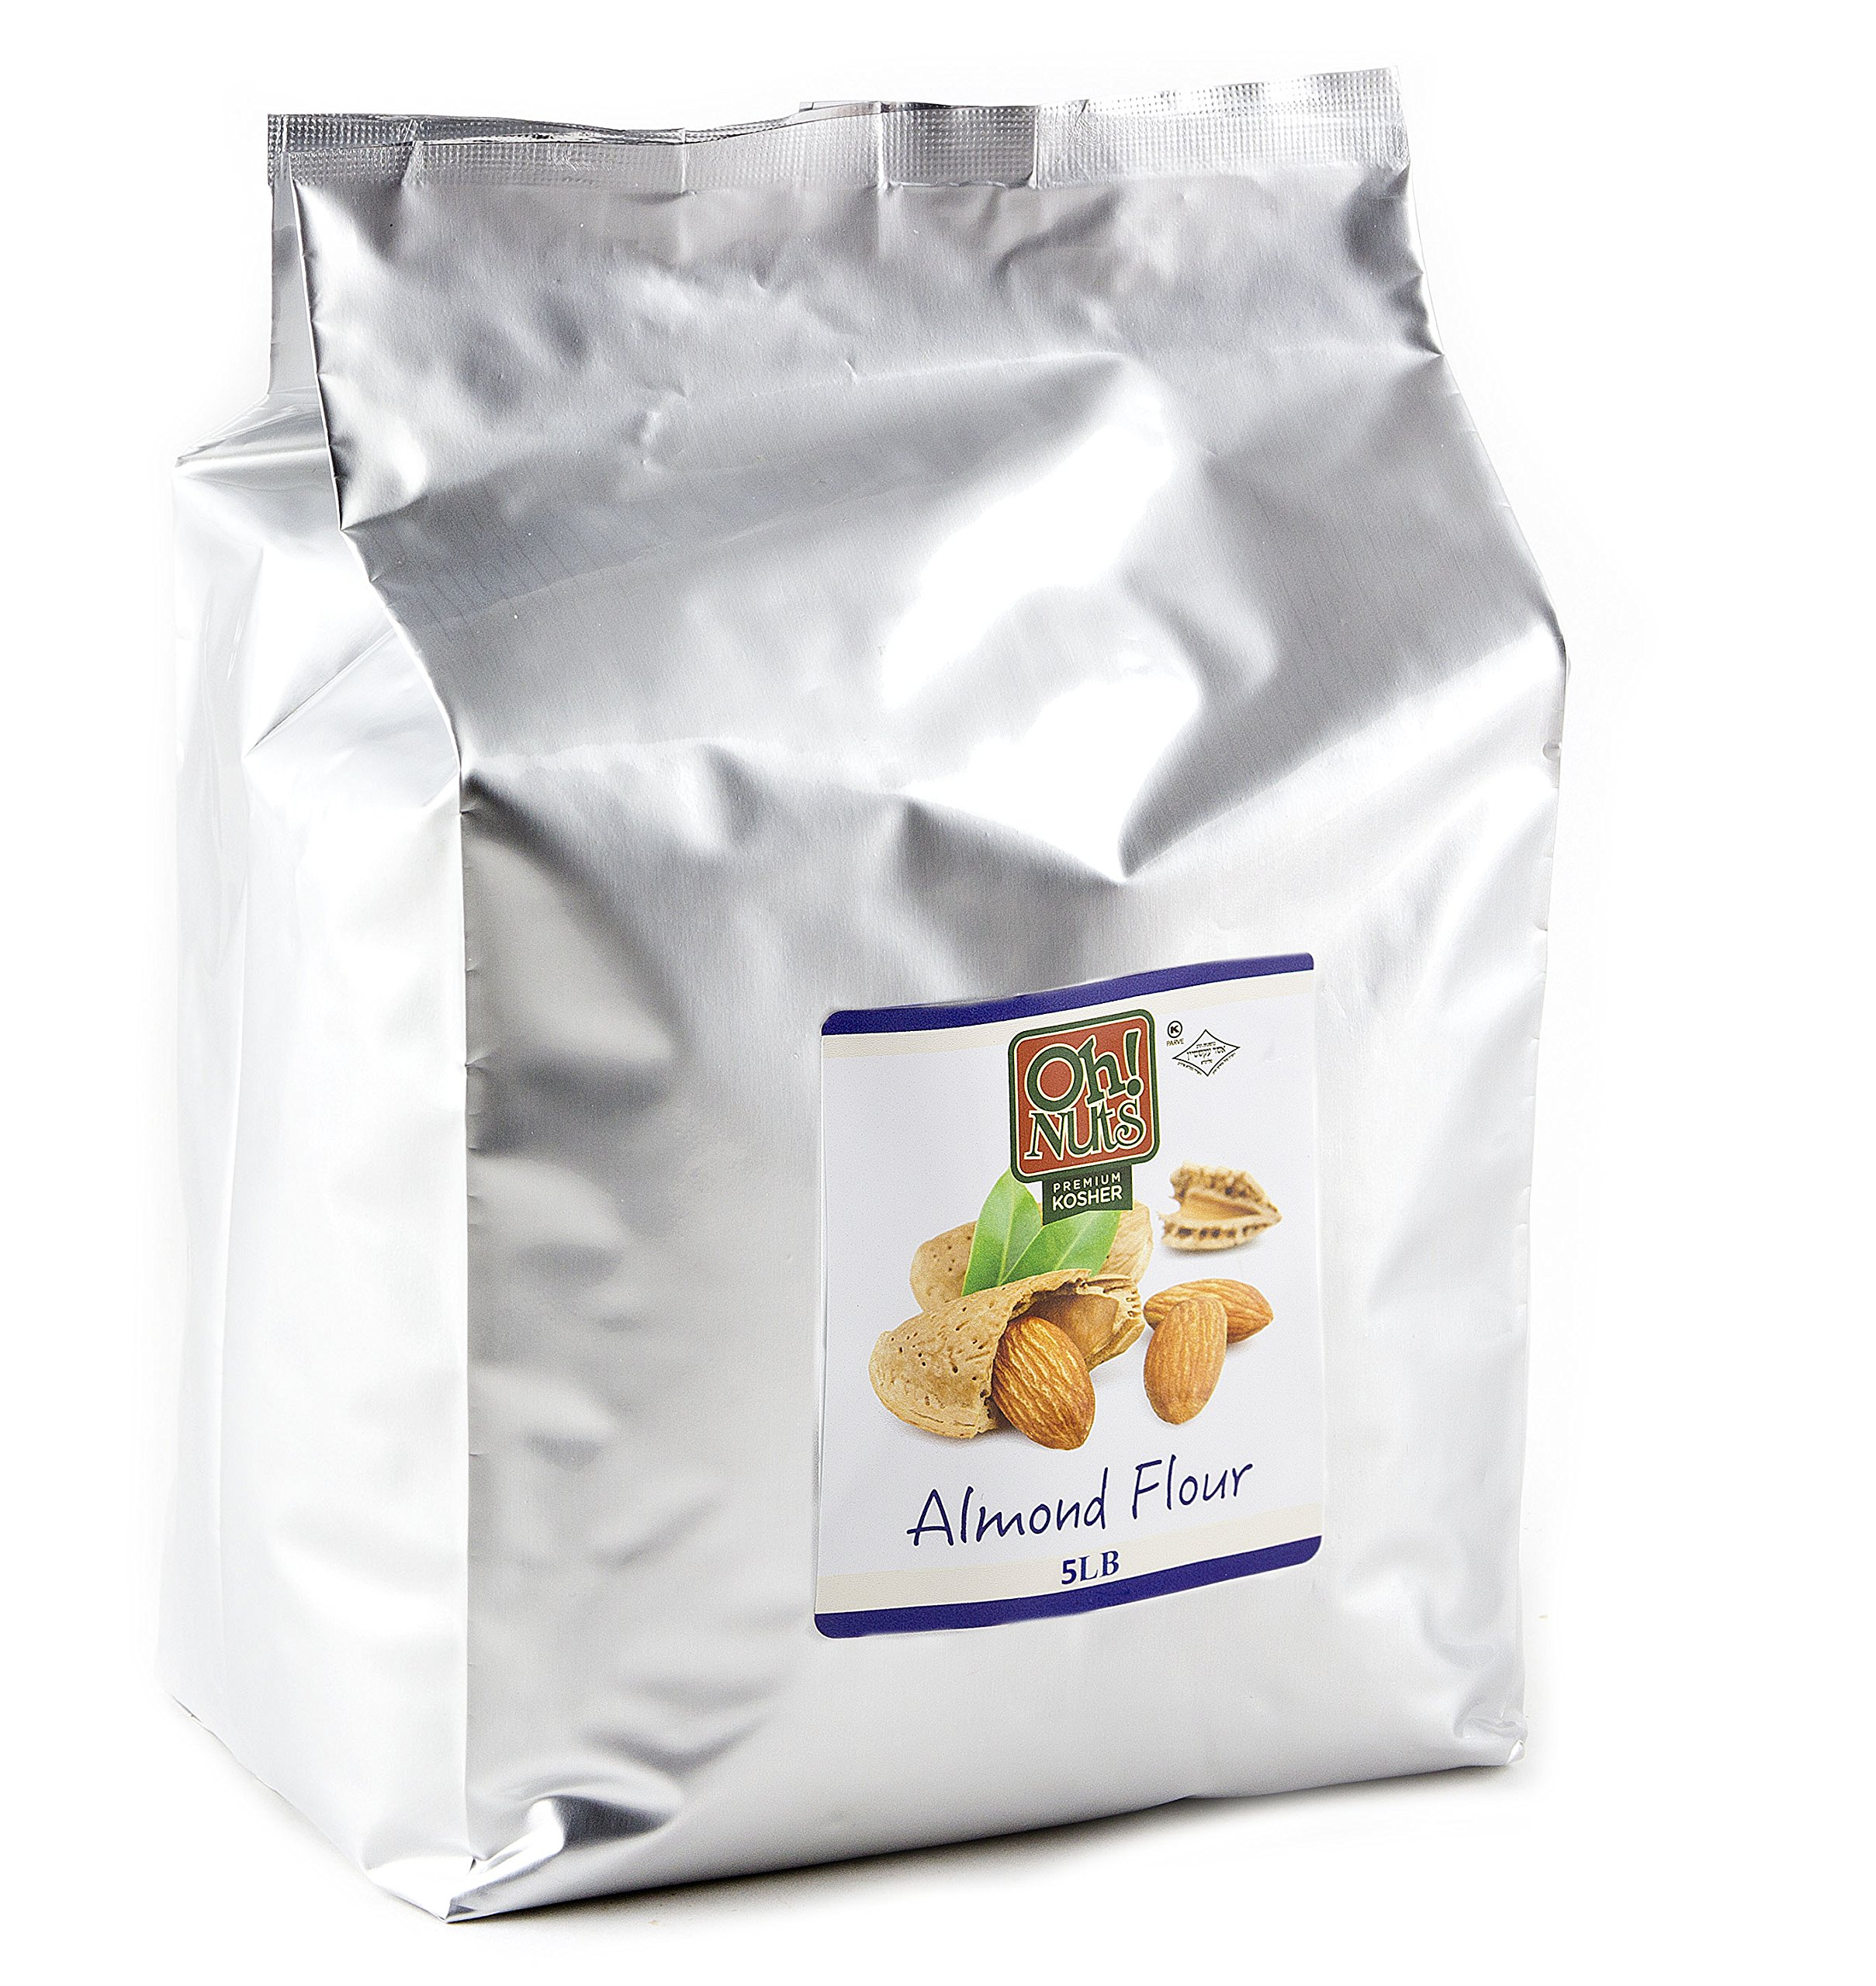 5LB Almond Flour Blanched, Extra Fine Ground Almond Meal - Oh! Nuts (5 LB Bag Blanched Almond Flour) by Oh! Nuts